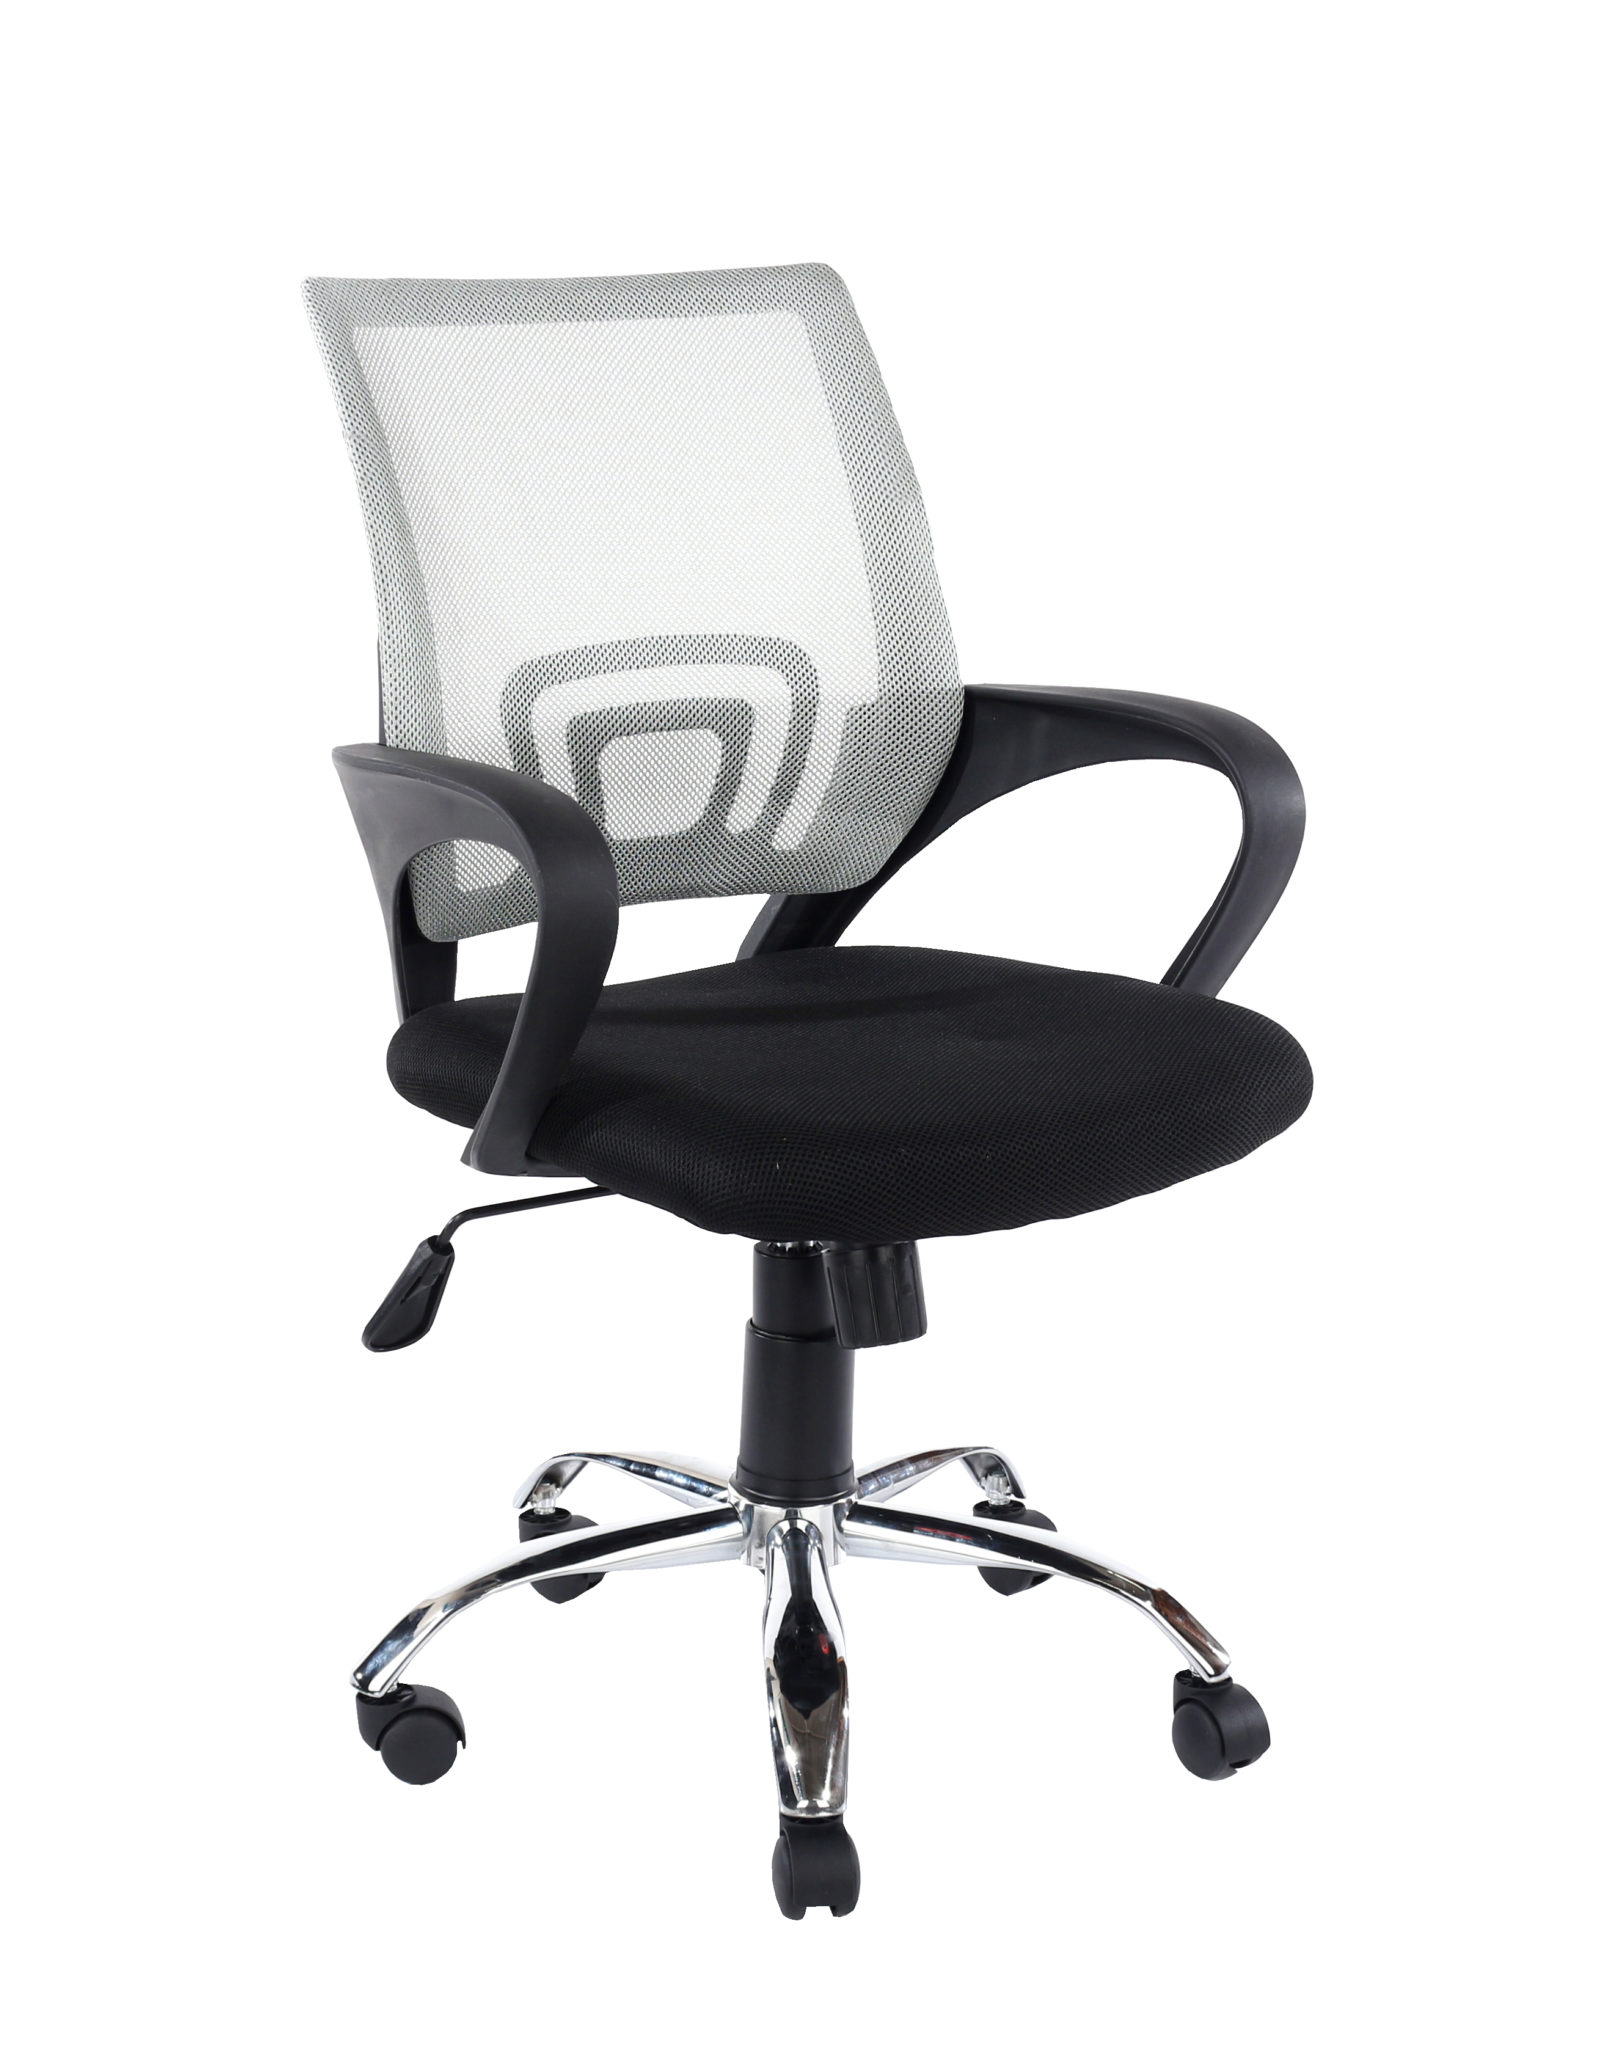 study chair in grey mesh back